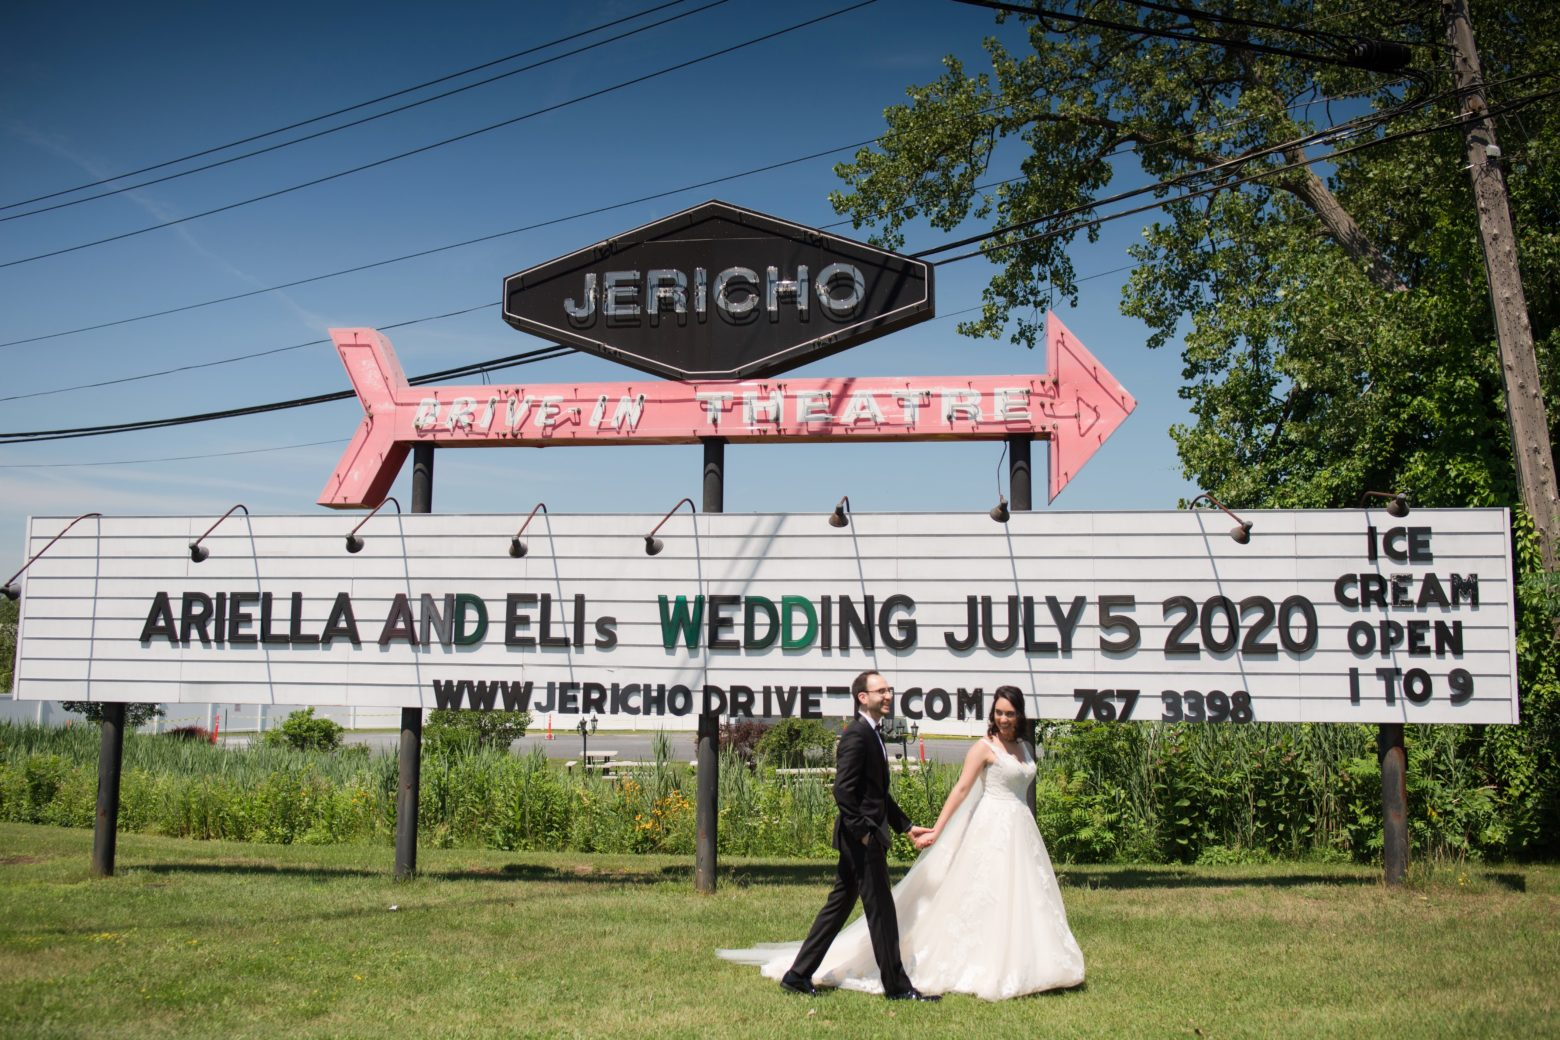 ARIELLA AND ELI'S WEDDING AT JERICHO DRIVE IN